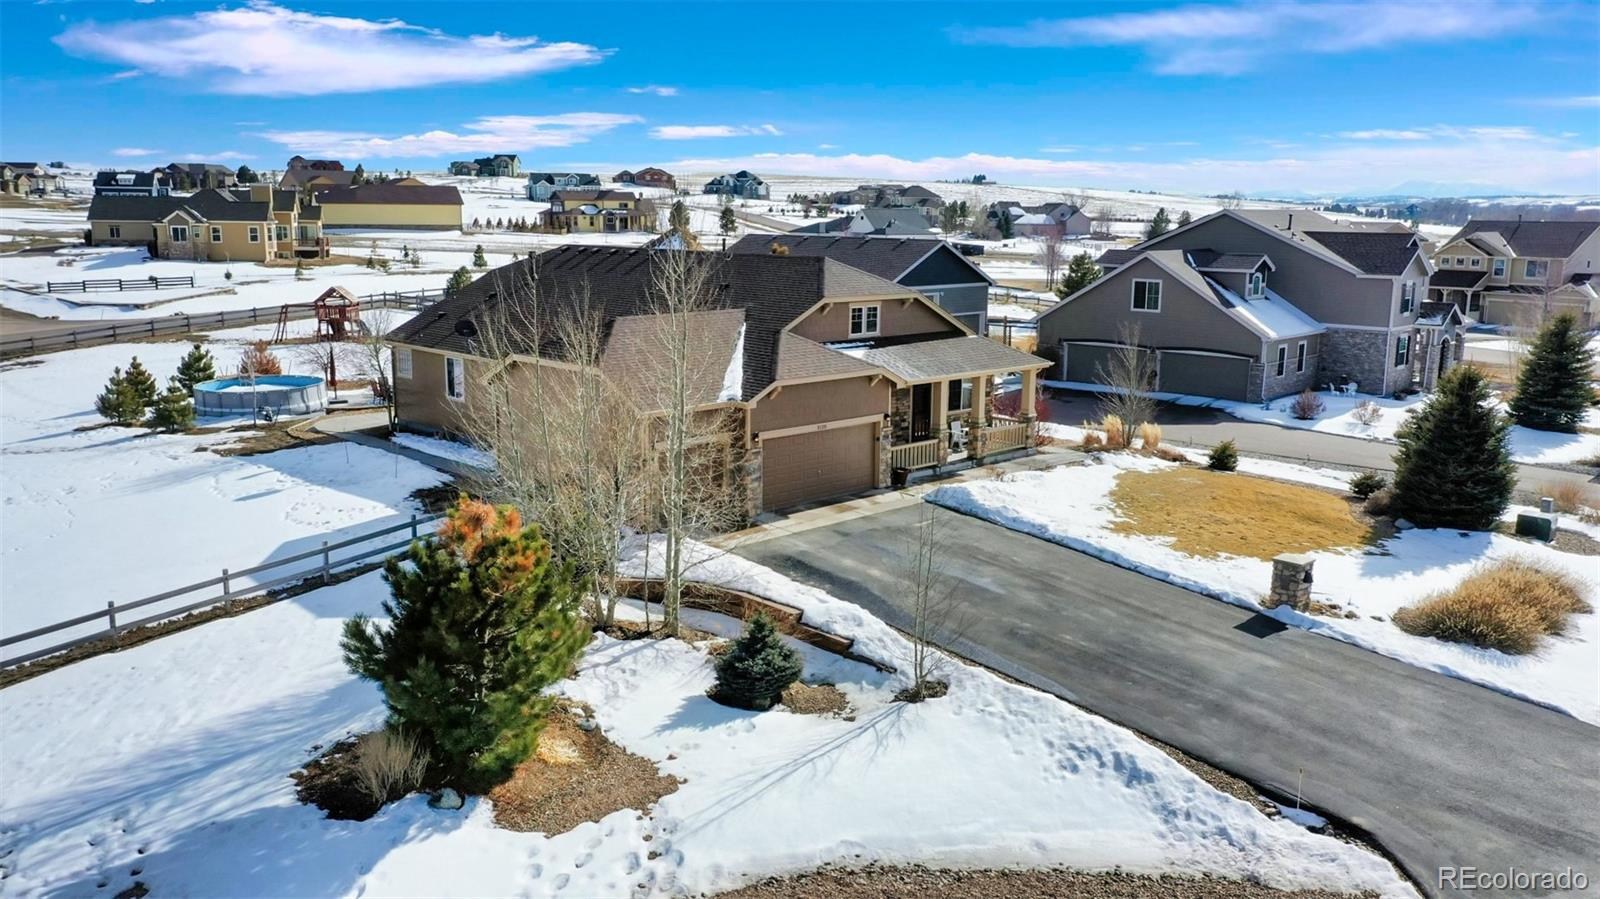 MLS# 6669287 - 1 - 5120 Laurel Valley Circle, Elizabeth, CO 80107